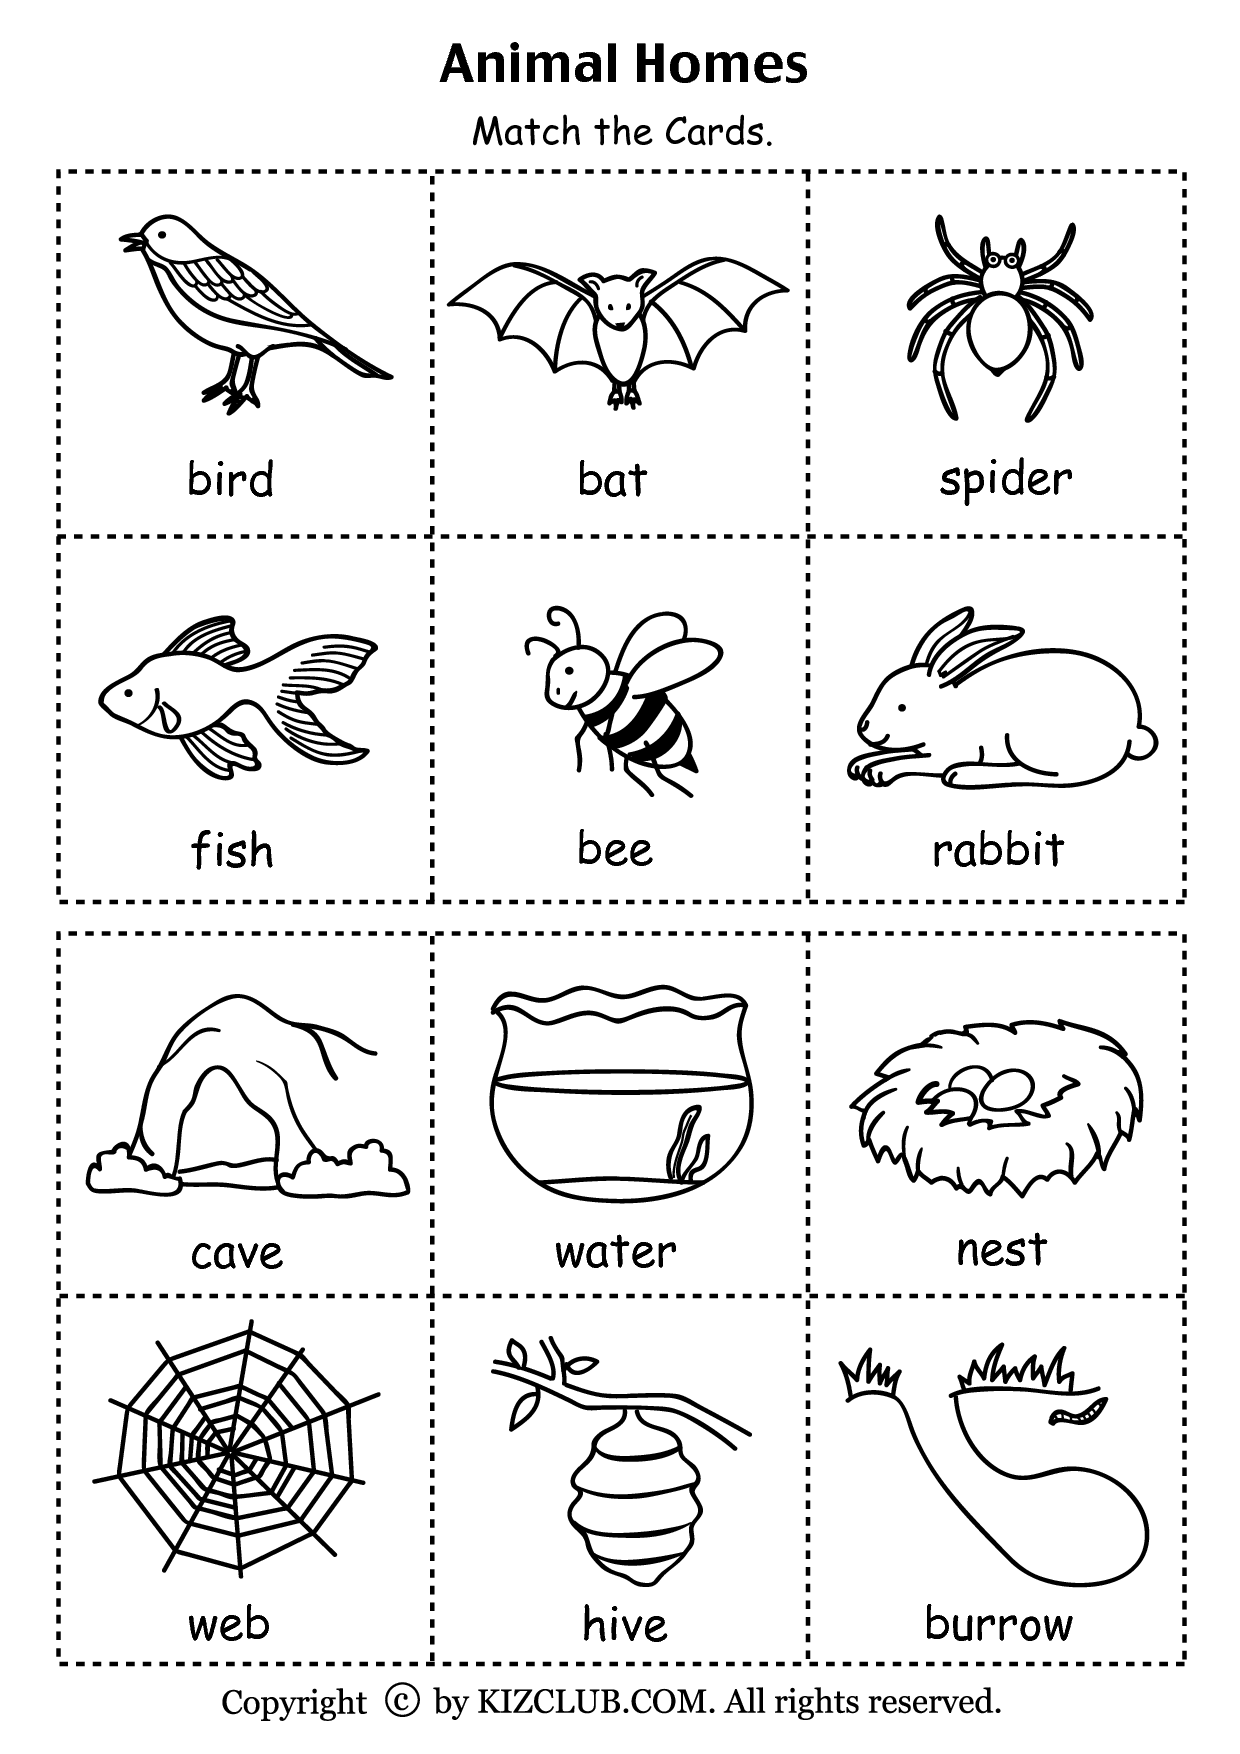 Worksheets Animal Habitats Worksheets animal homes pdf printable organization or everything else project kindergarten home box ideas